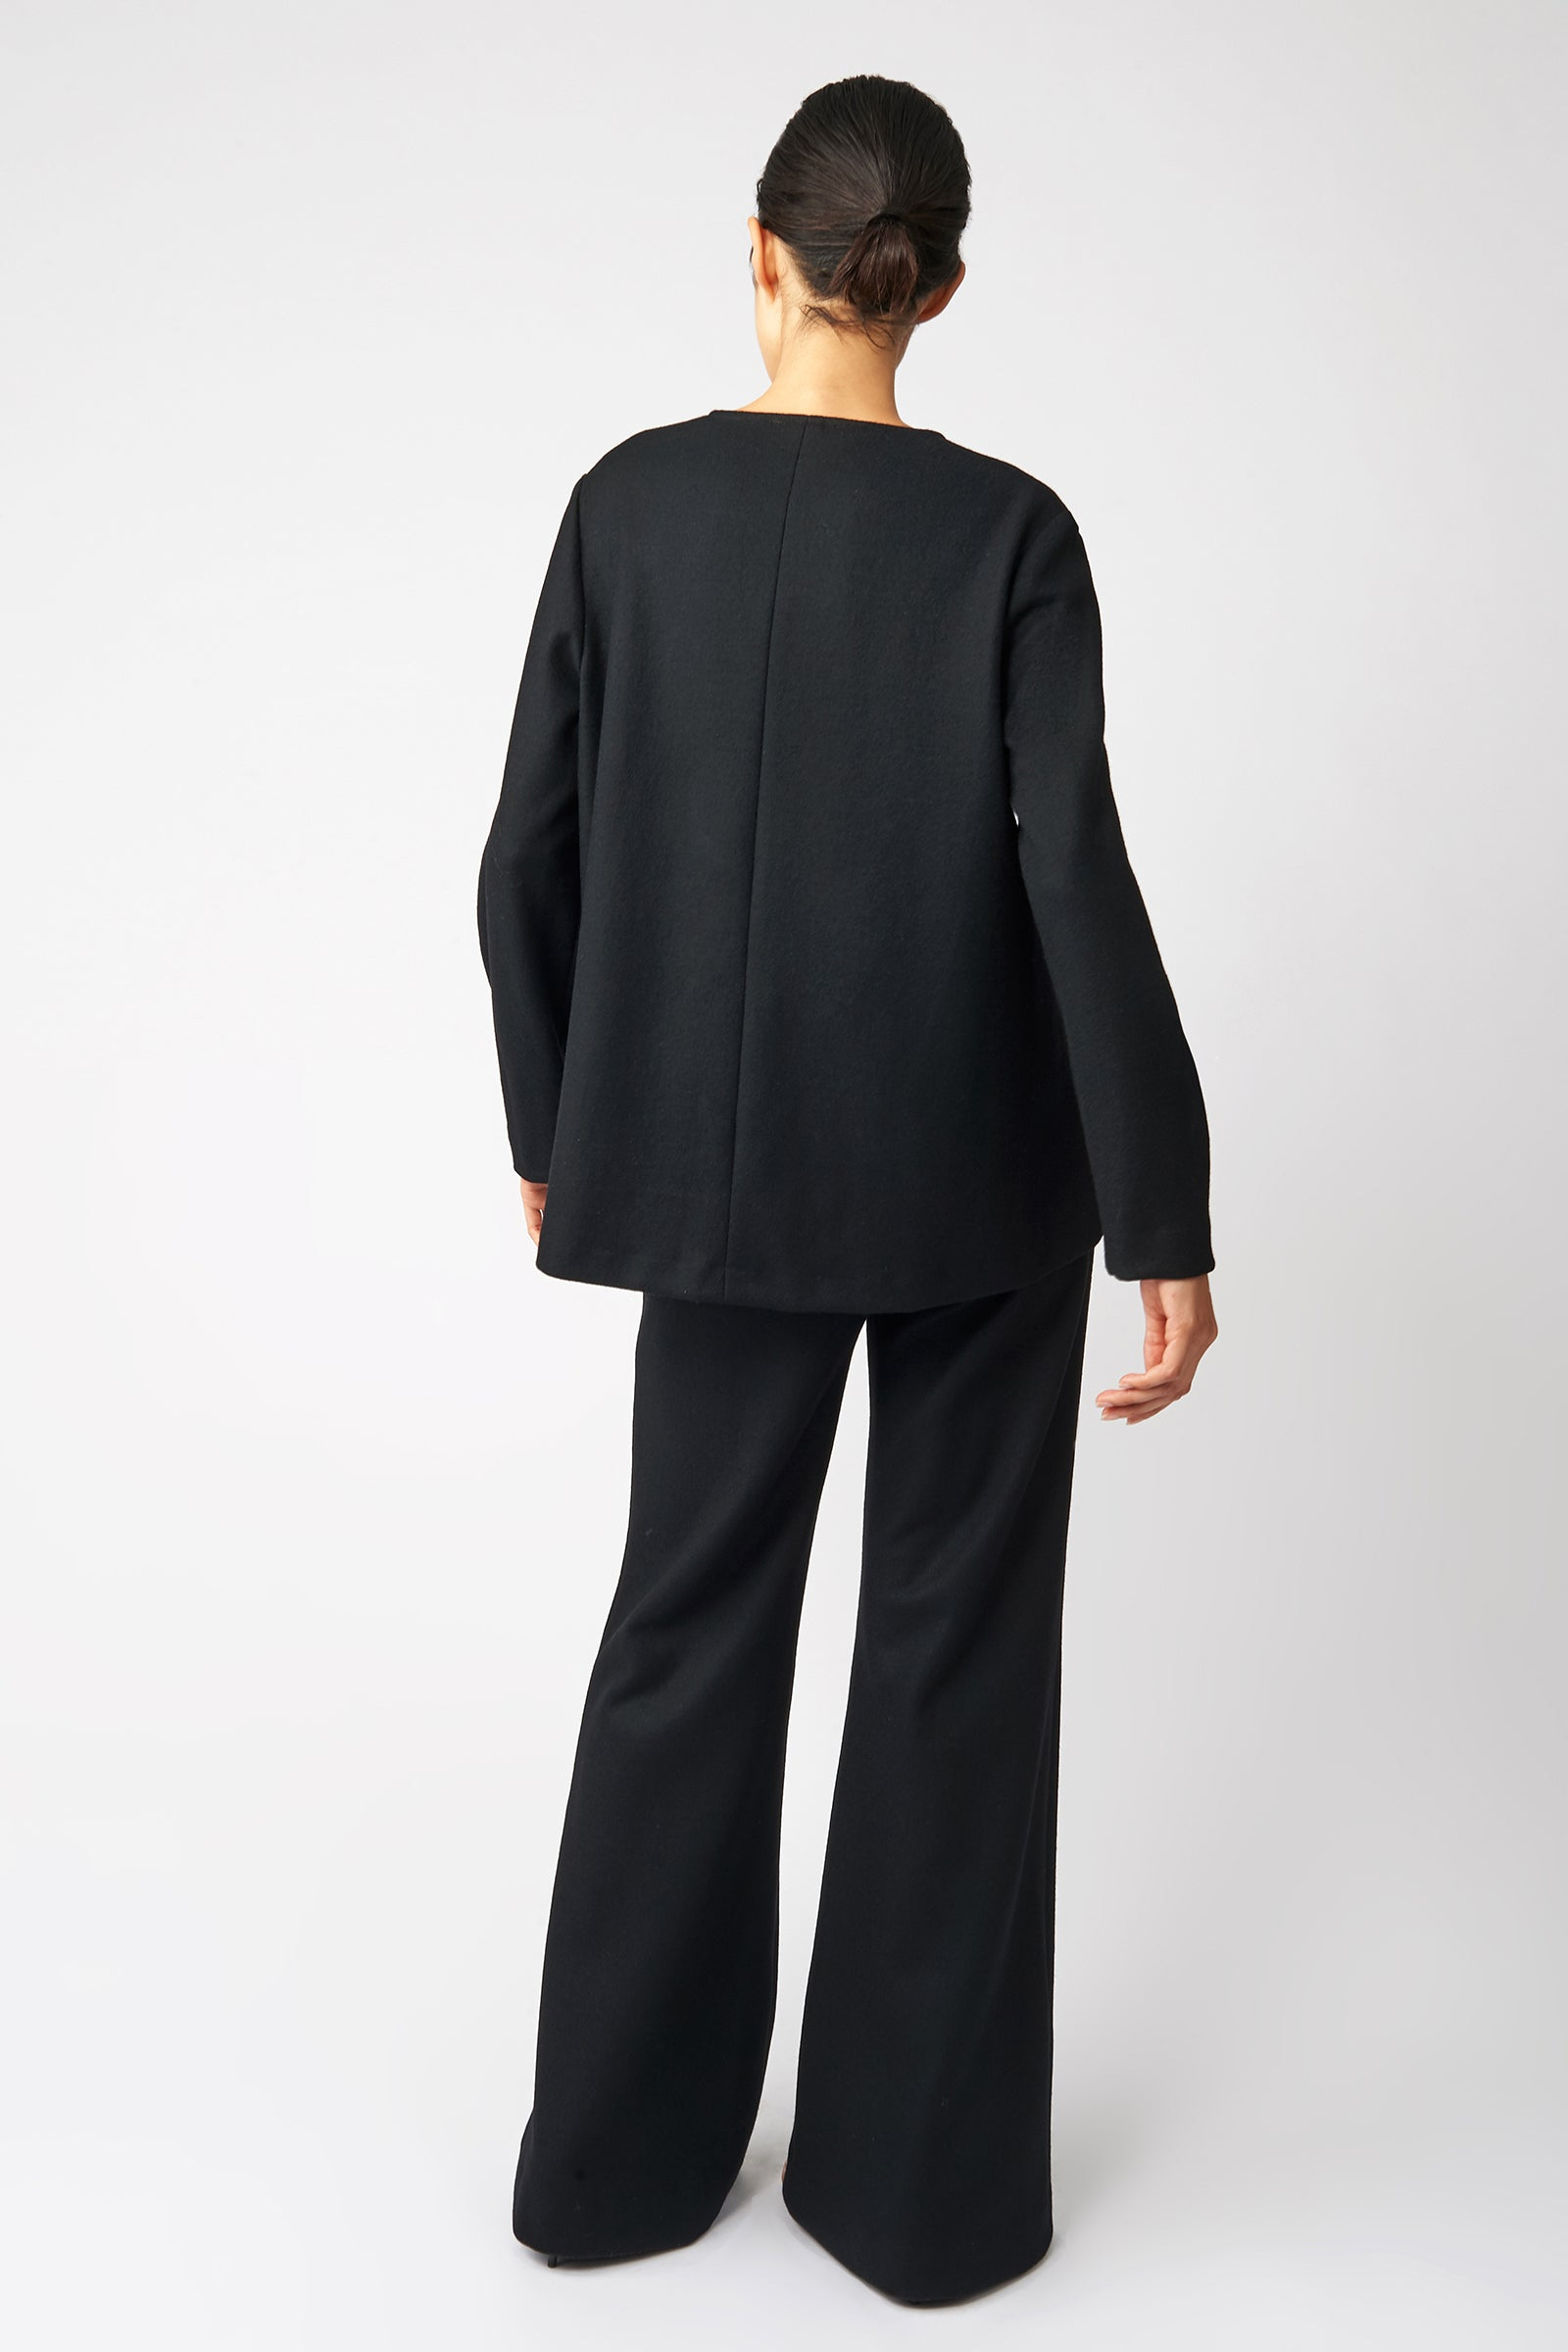 Kal Rieman V Neck Swing Top in Black on Model Back View